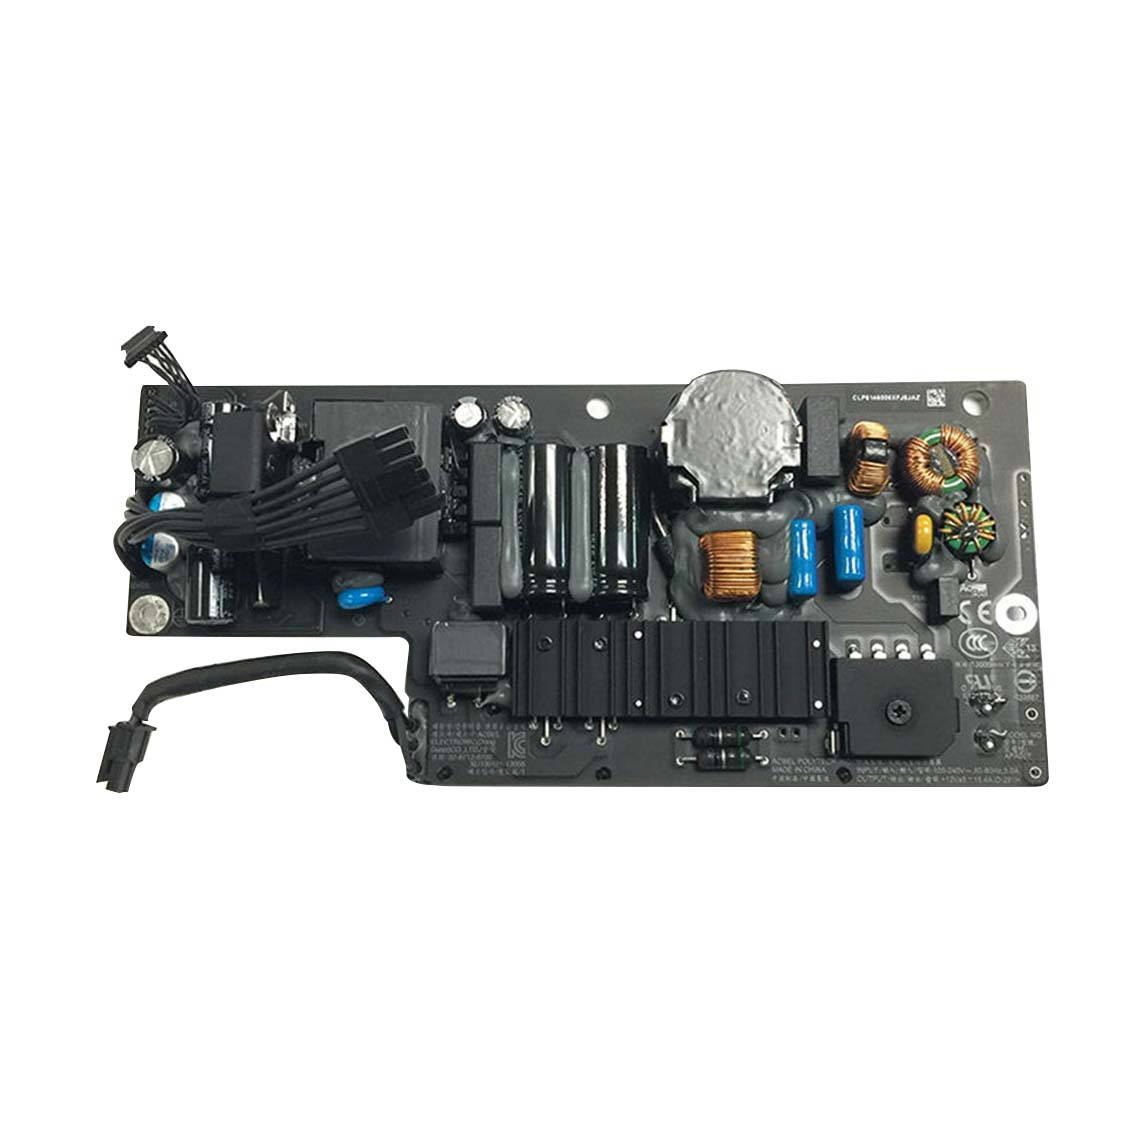 New 185W Power Supply Power Board For Imac 21.5 Inch A1418 Late 2012 Early 2013 Mid 2014 2015 YearsNew 185W Power Supply Power Board For Imac 21.5 Inch A1418 Late 2012 Early 2013 Mid 2014 2015 Years